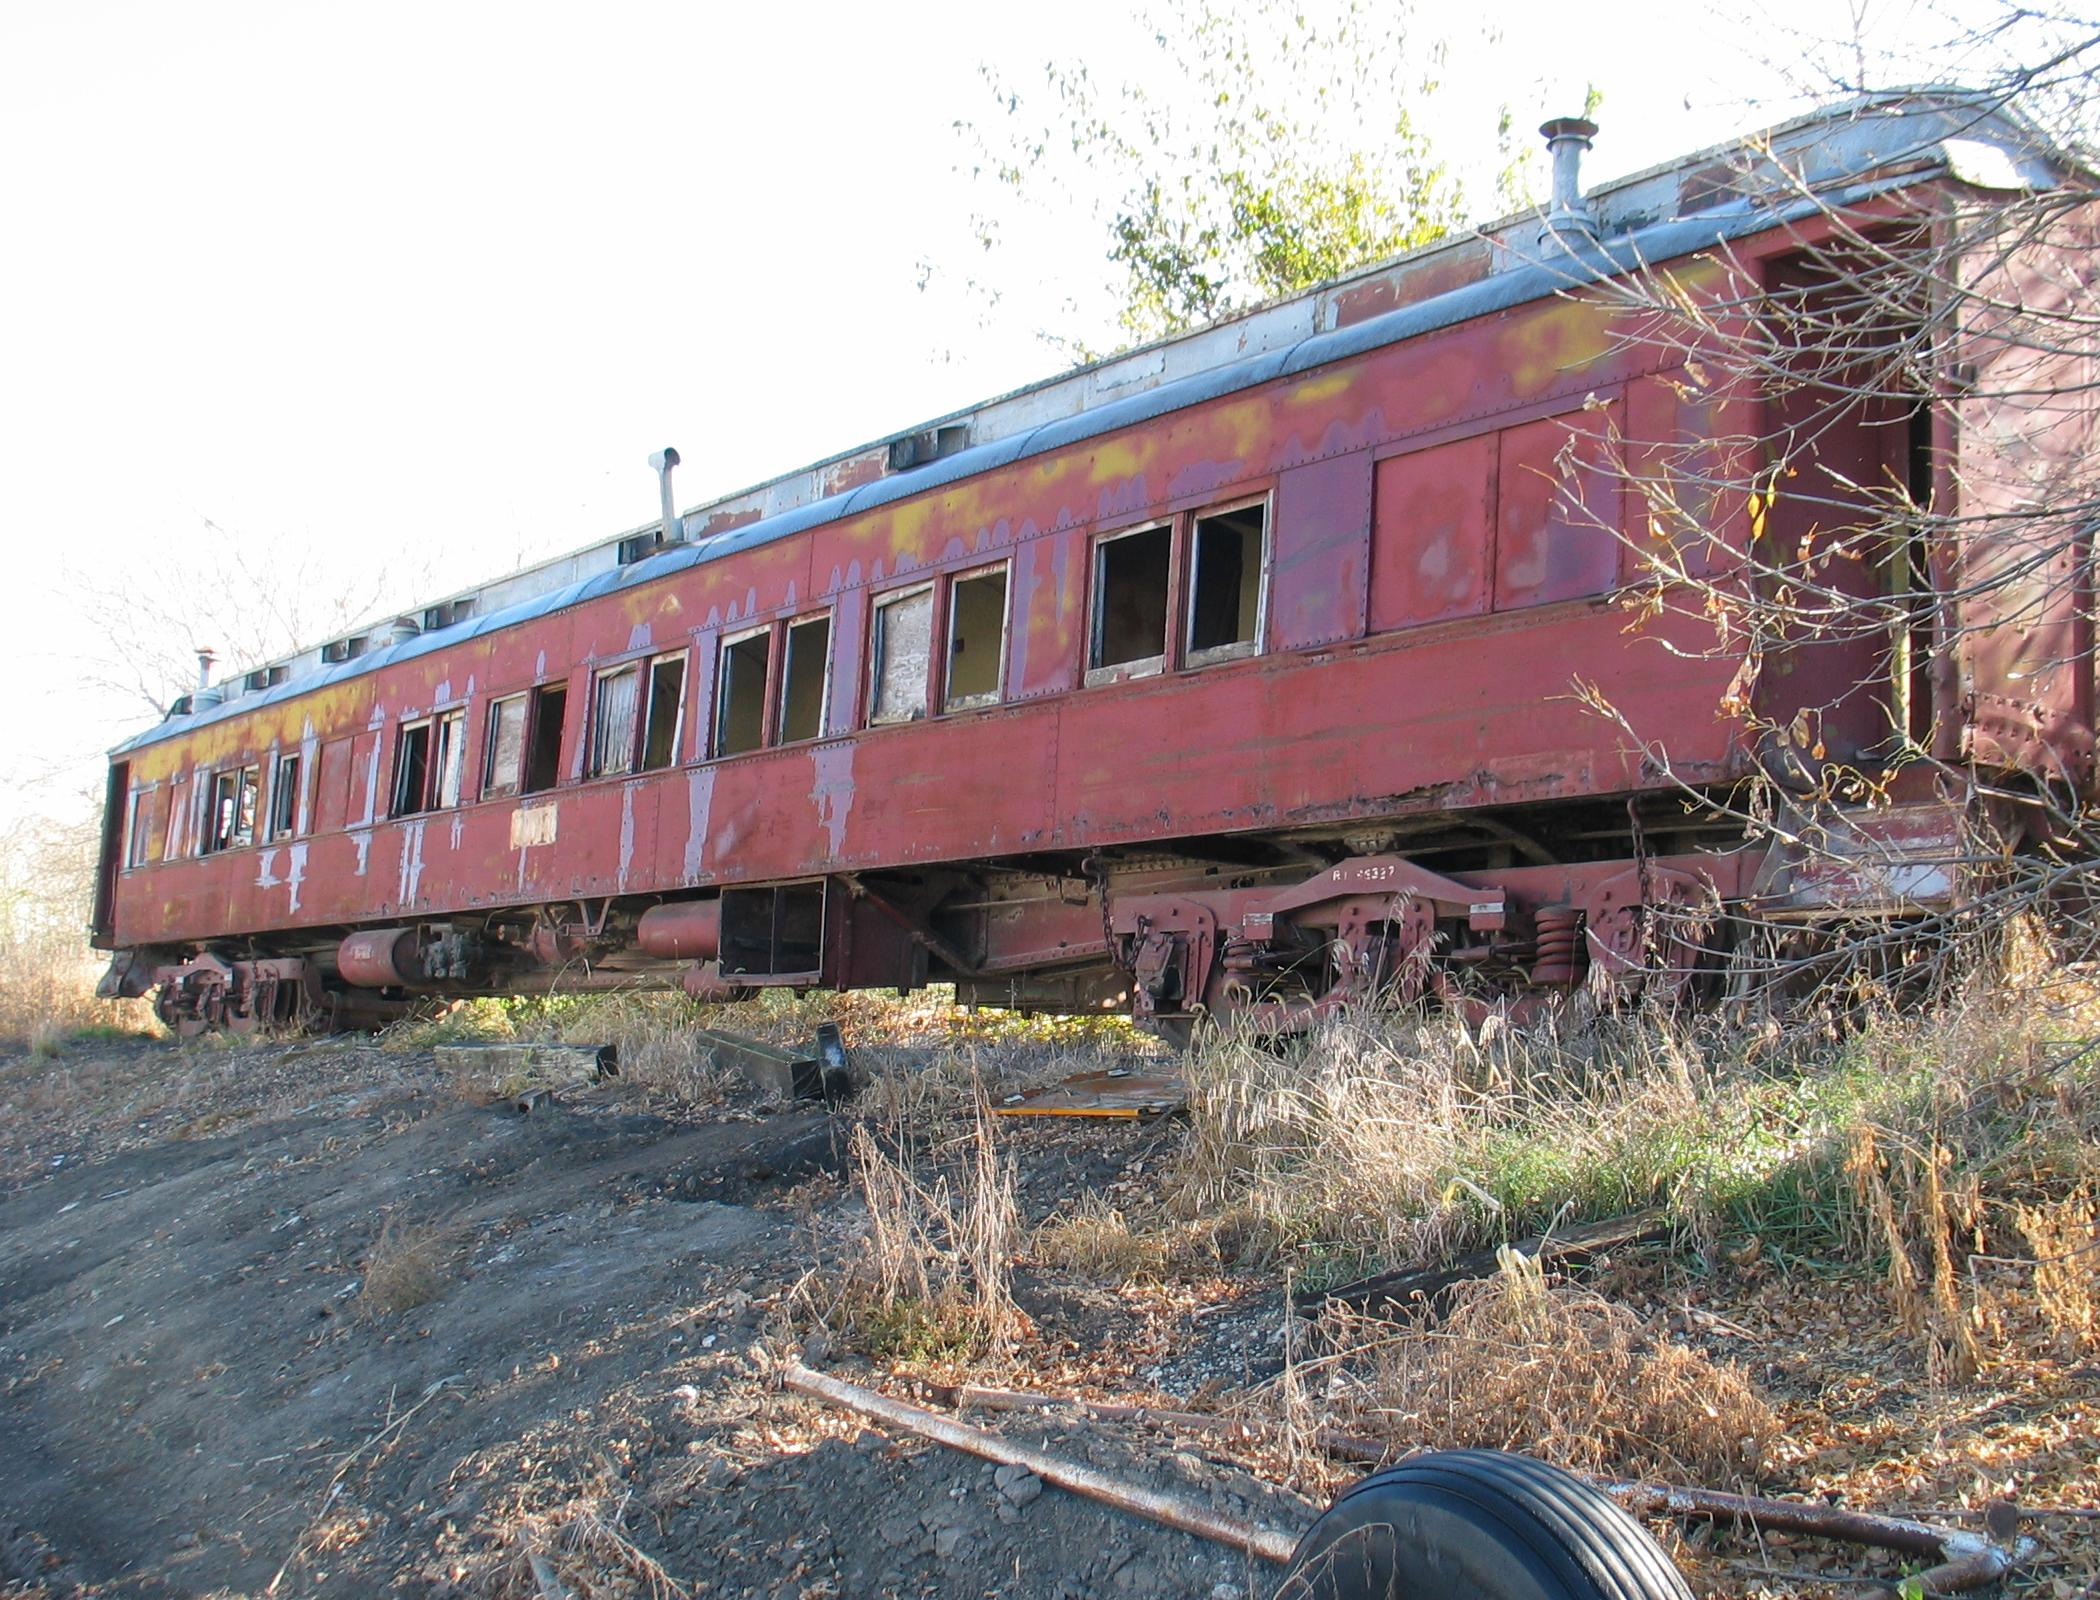 Old Pullman (RI) passenger car on the Pellet spur at Atlantic, Oct. 25, 2005.